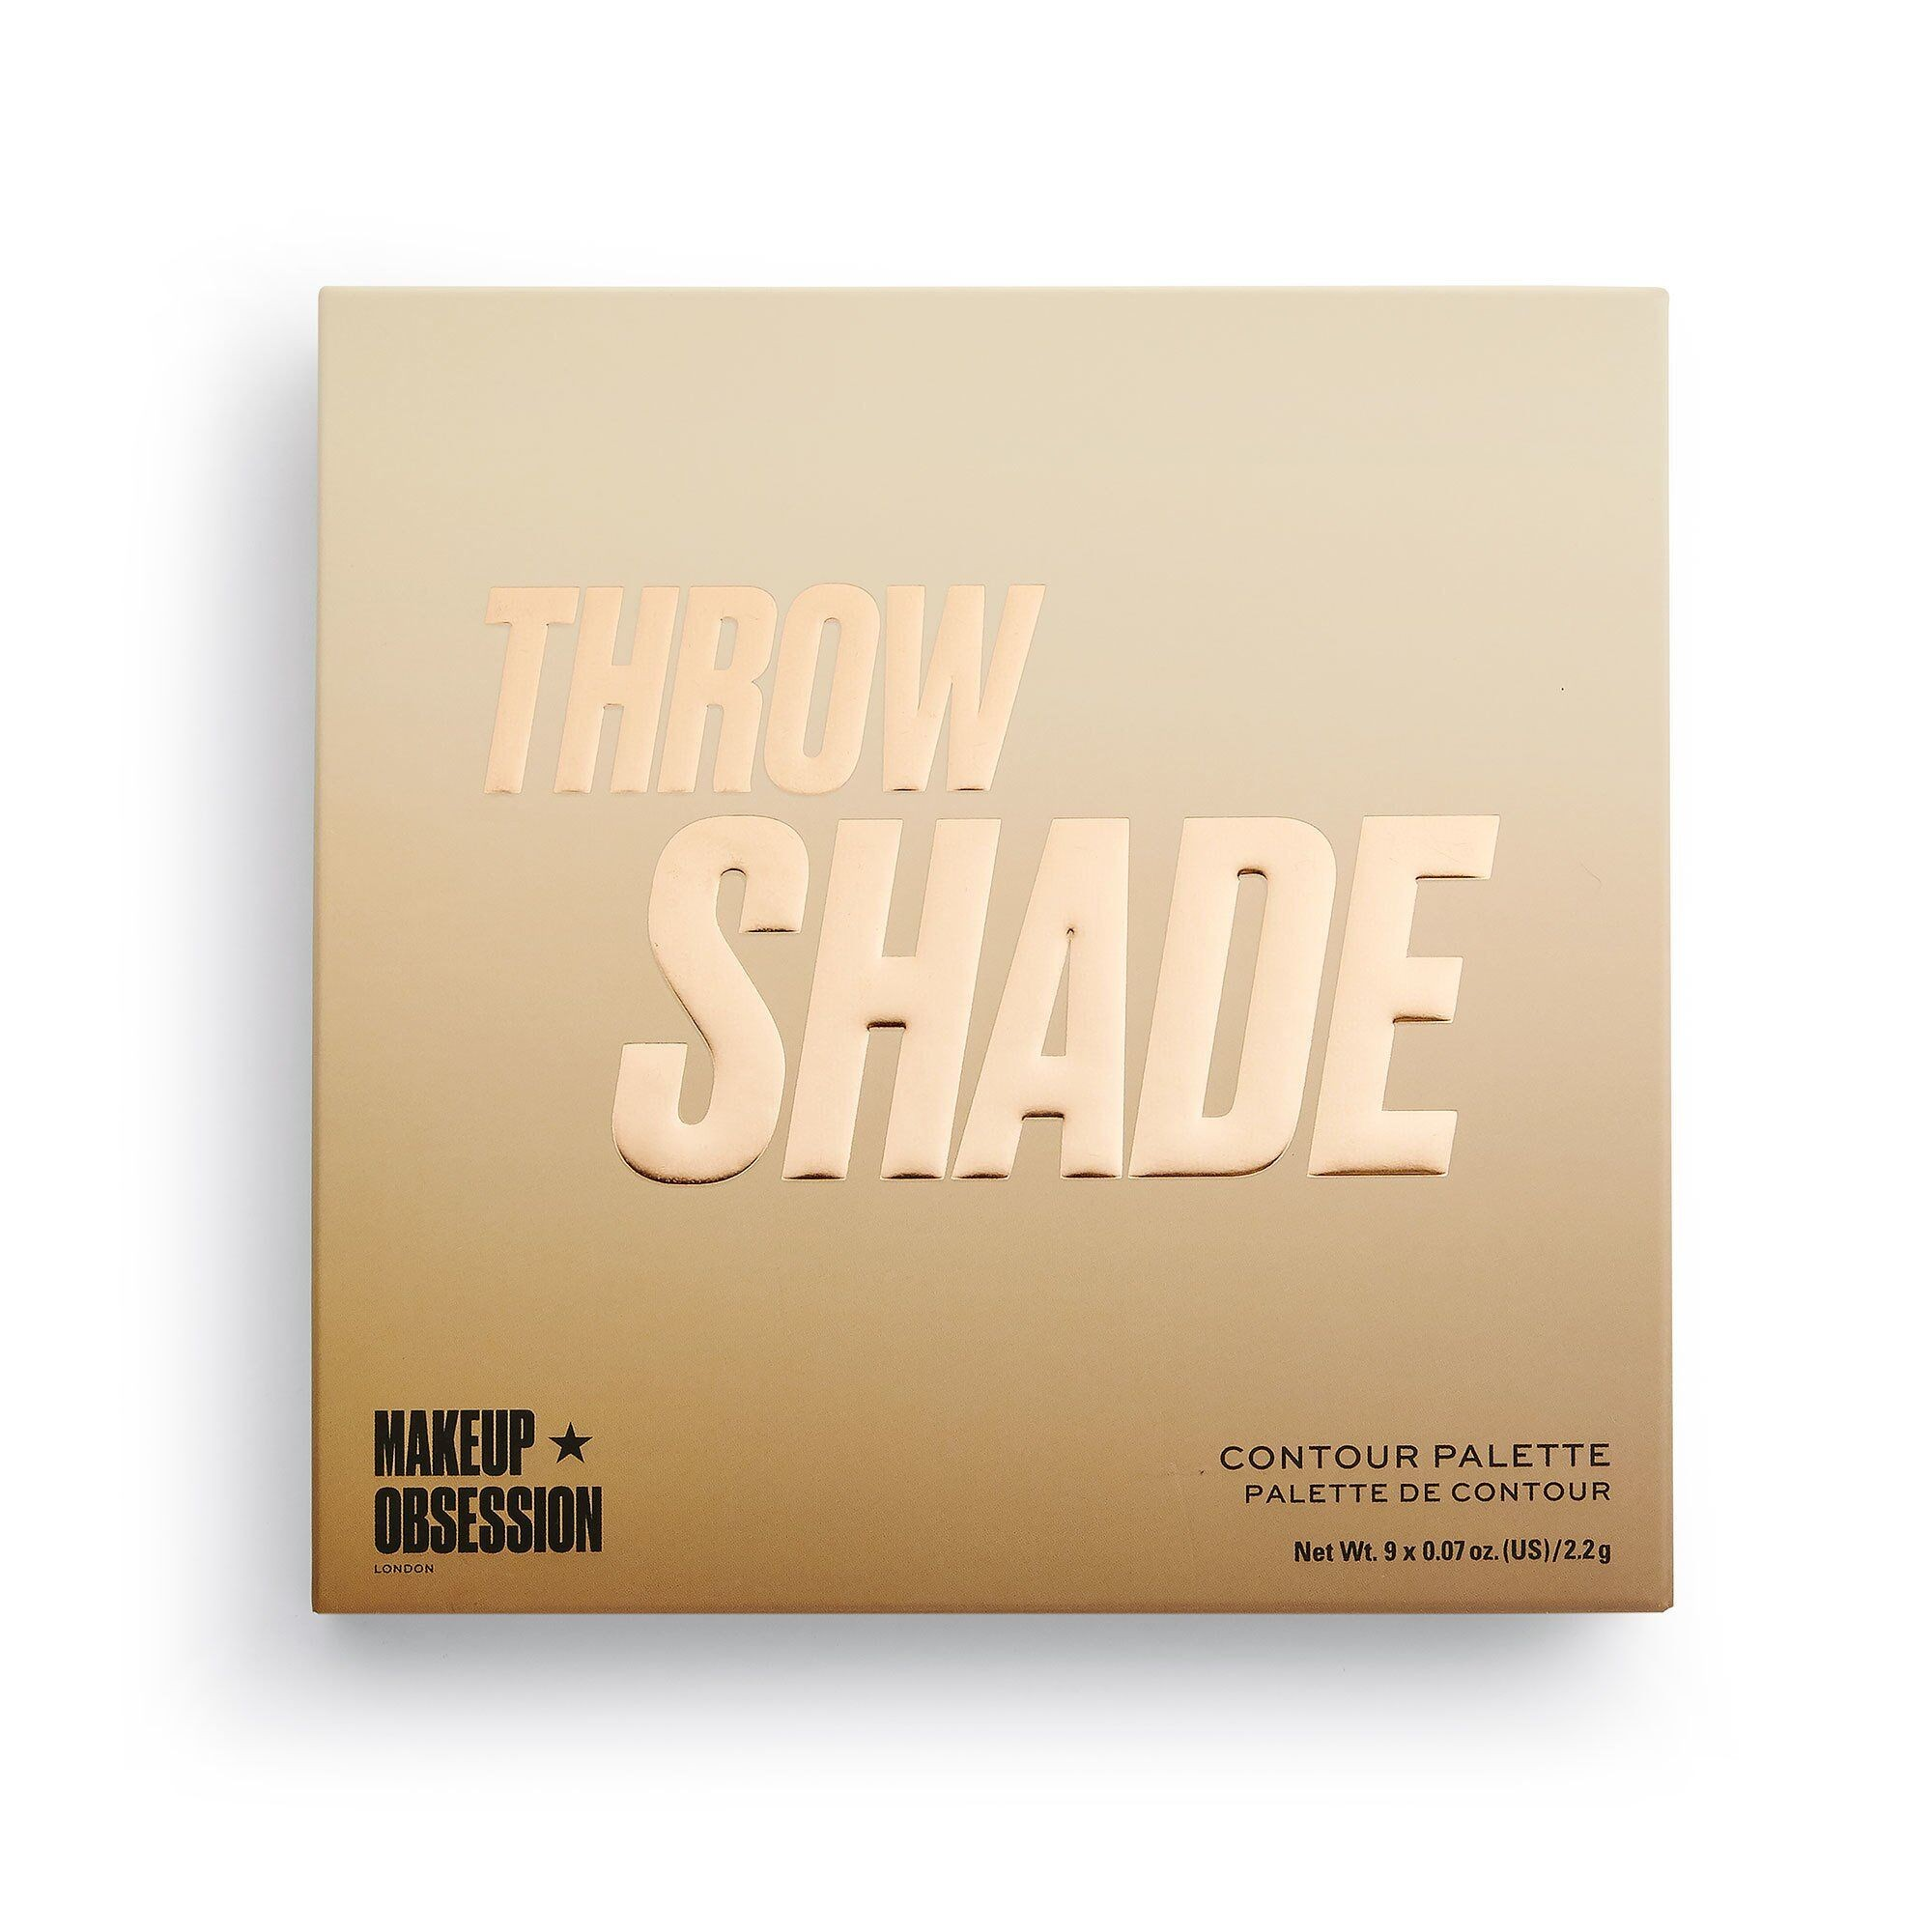 Throw Shade Contour Palette